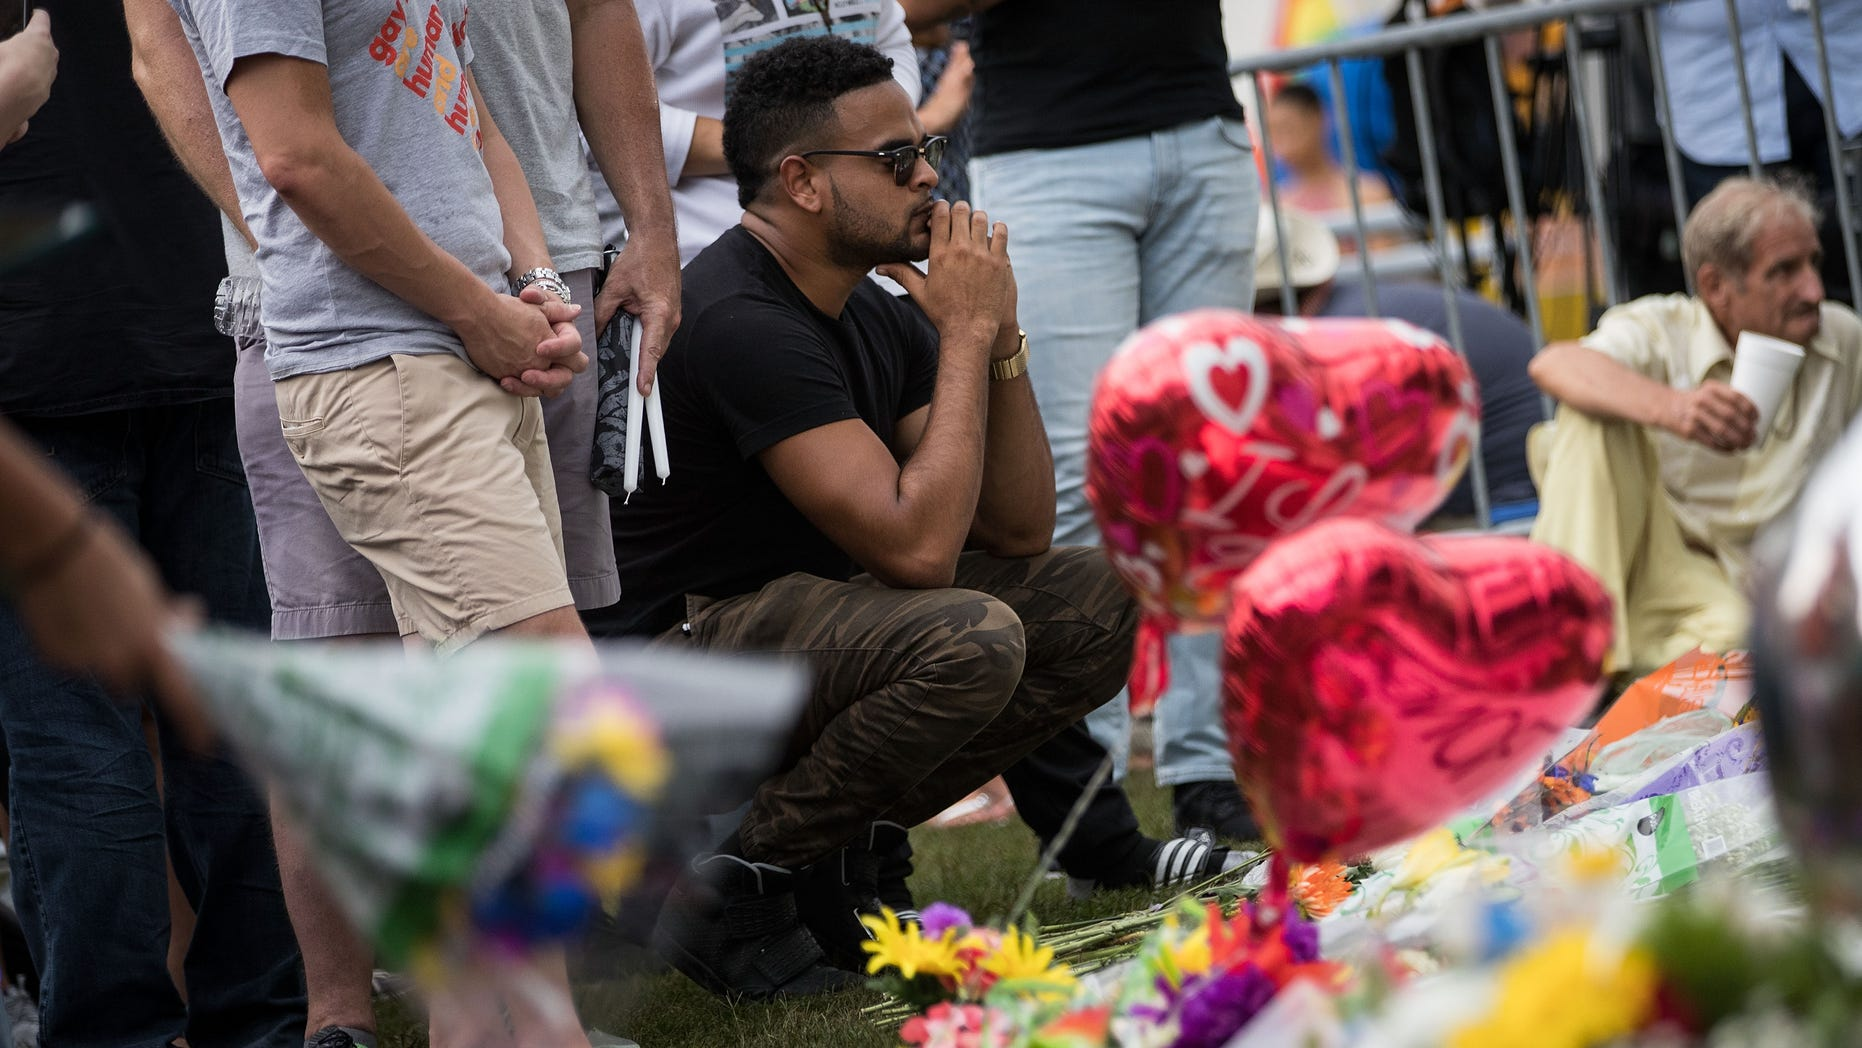 Makeshift memorial for the victims of the Pulse Nightclub shootings in Orlando, Florida.